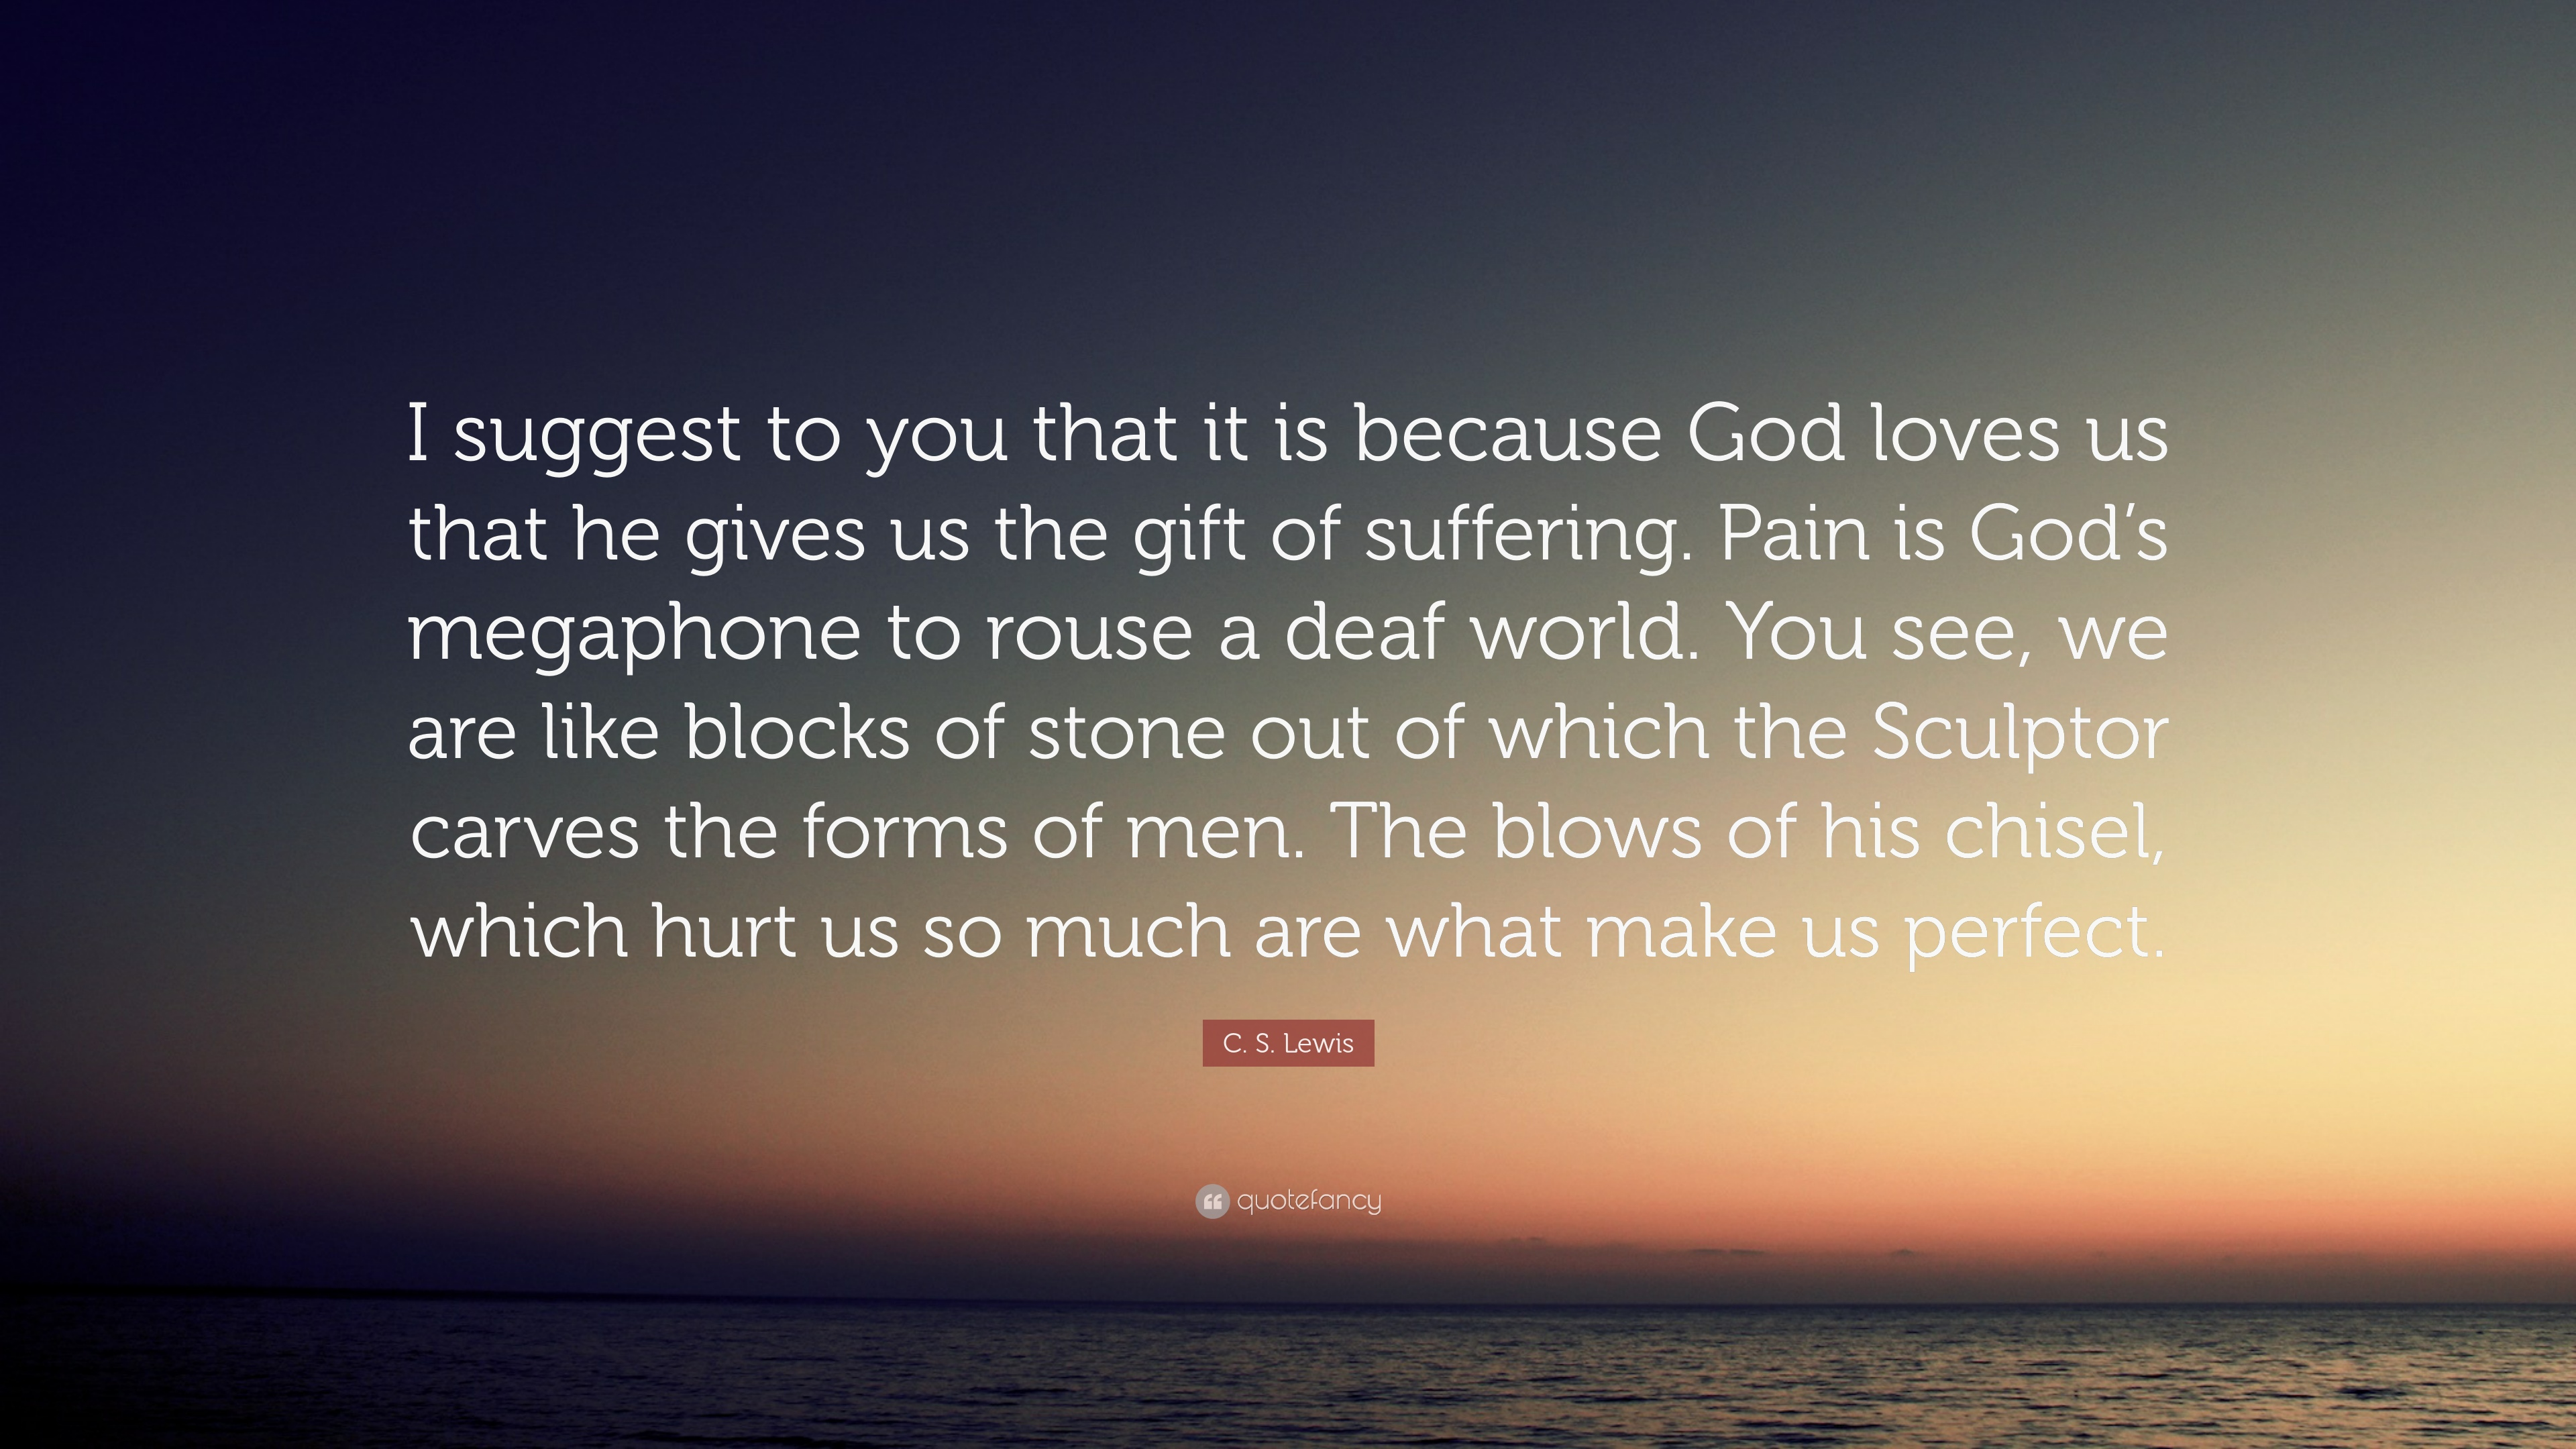 C S Lewis Quote I Suggest To You That It Is Because God Loves Us